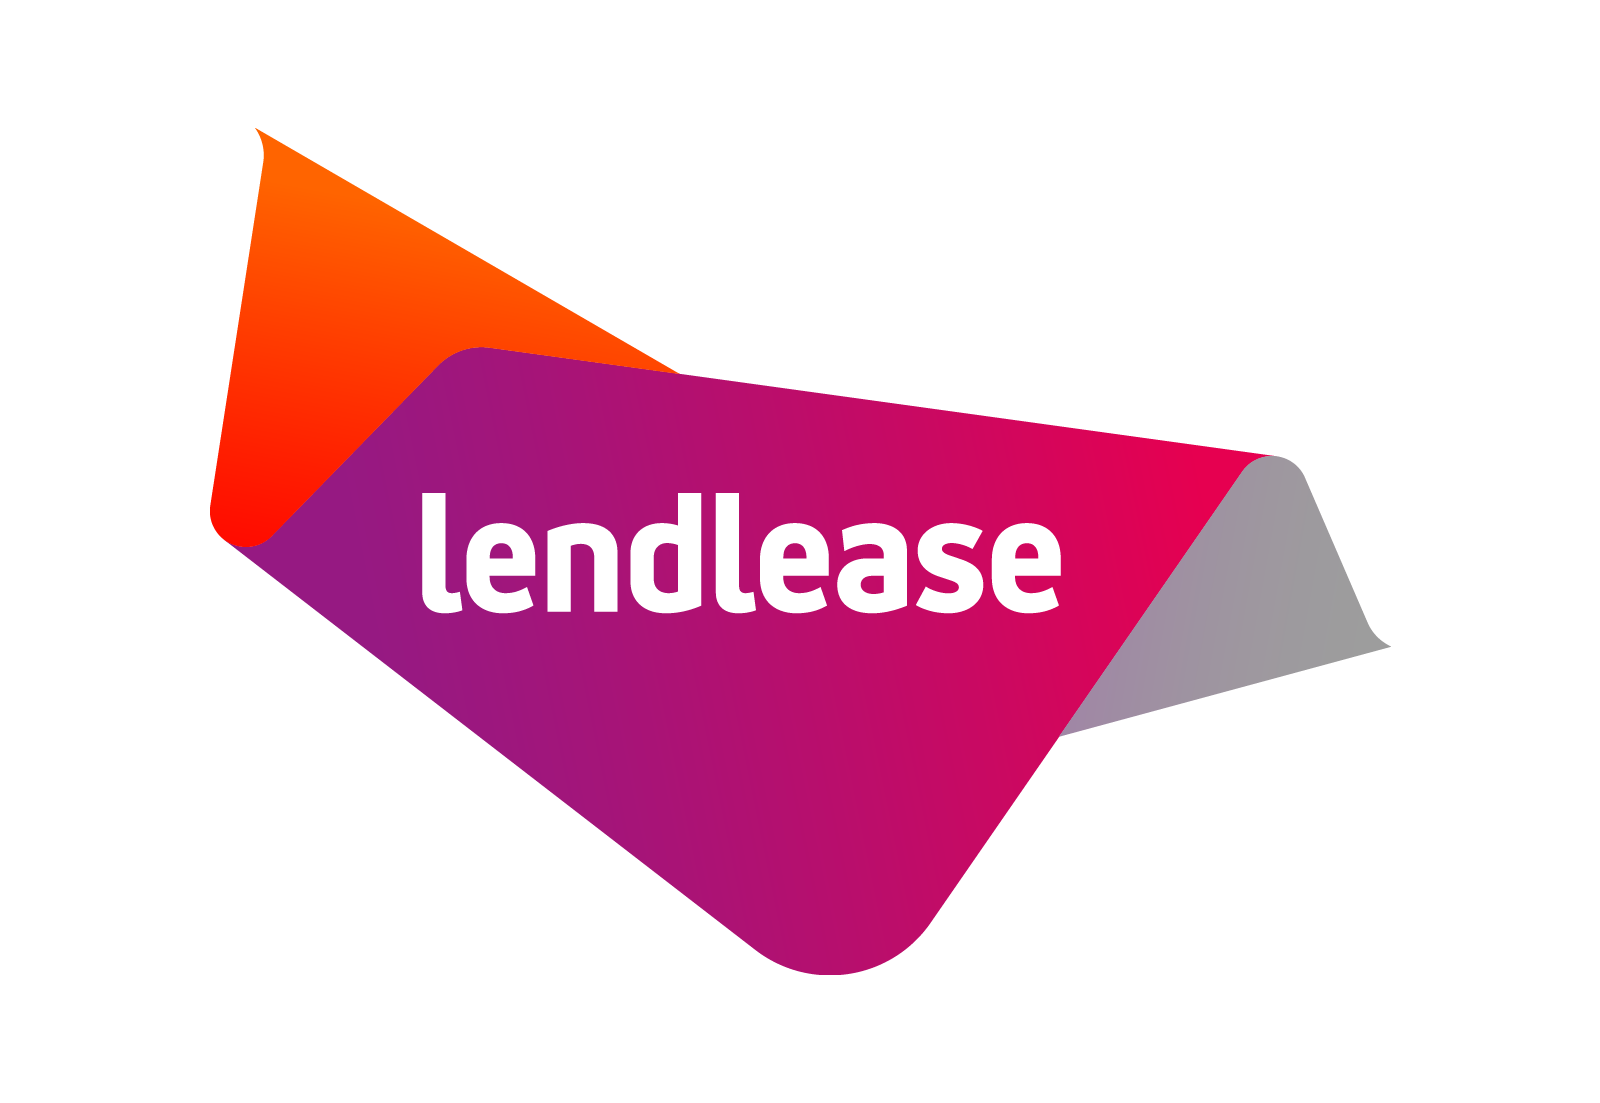 Lendlease Group logo purple